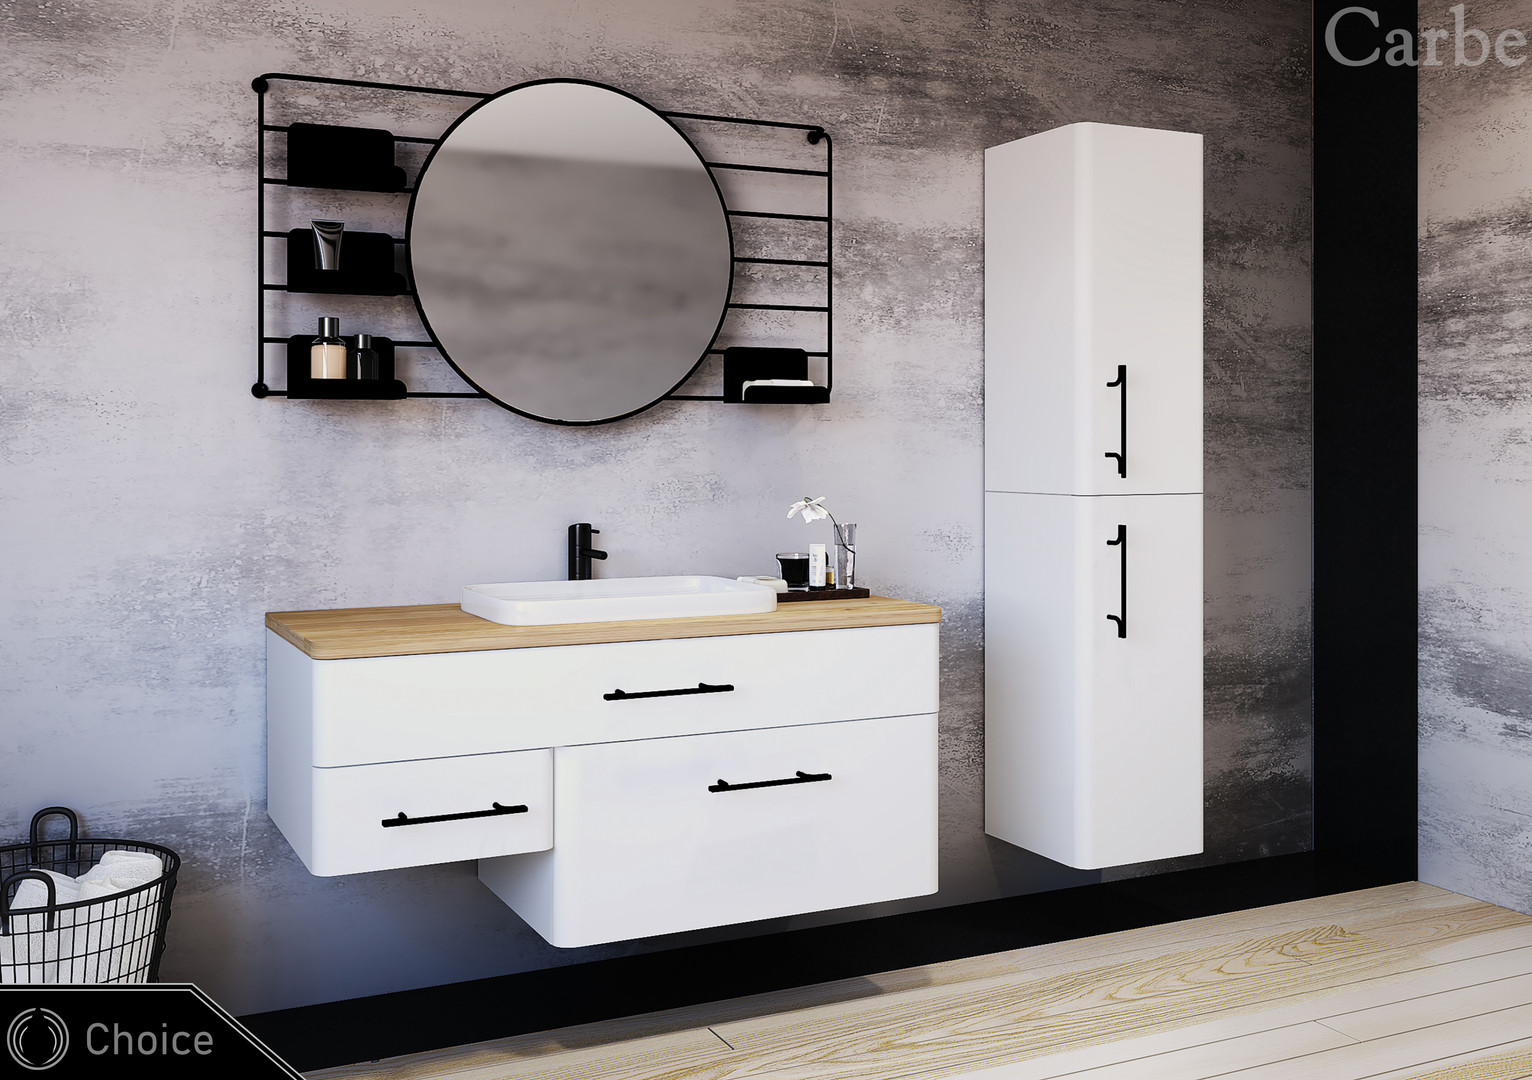 Choice - Premium White Supermatt, Natural Oak Wood, Dolmite Washbasin, Soft Closing